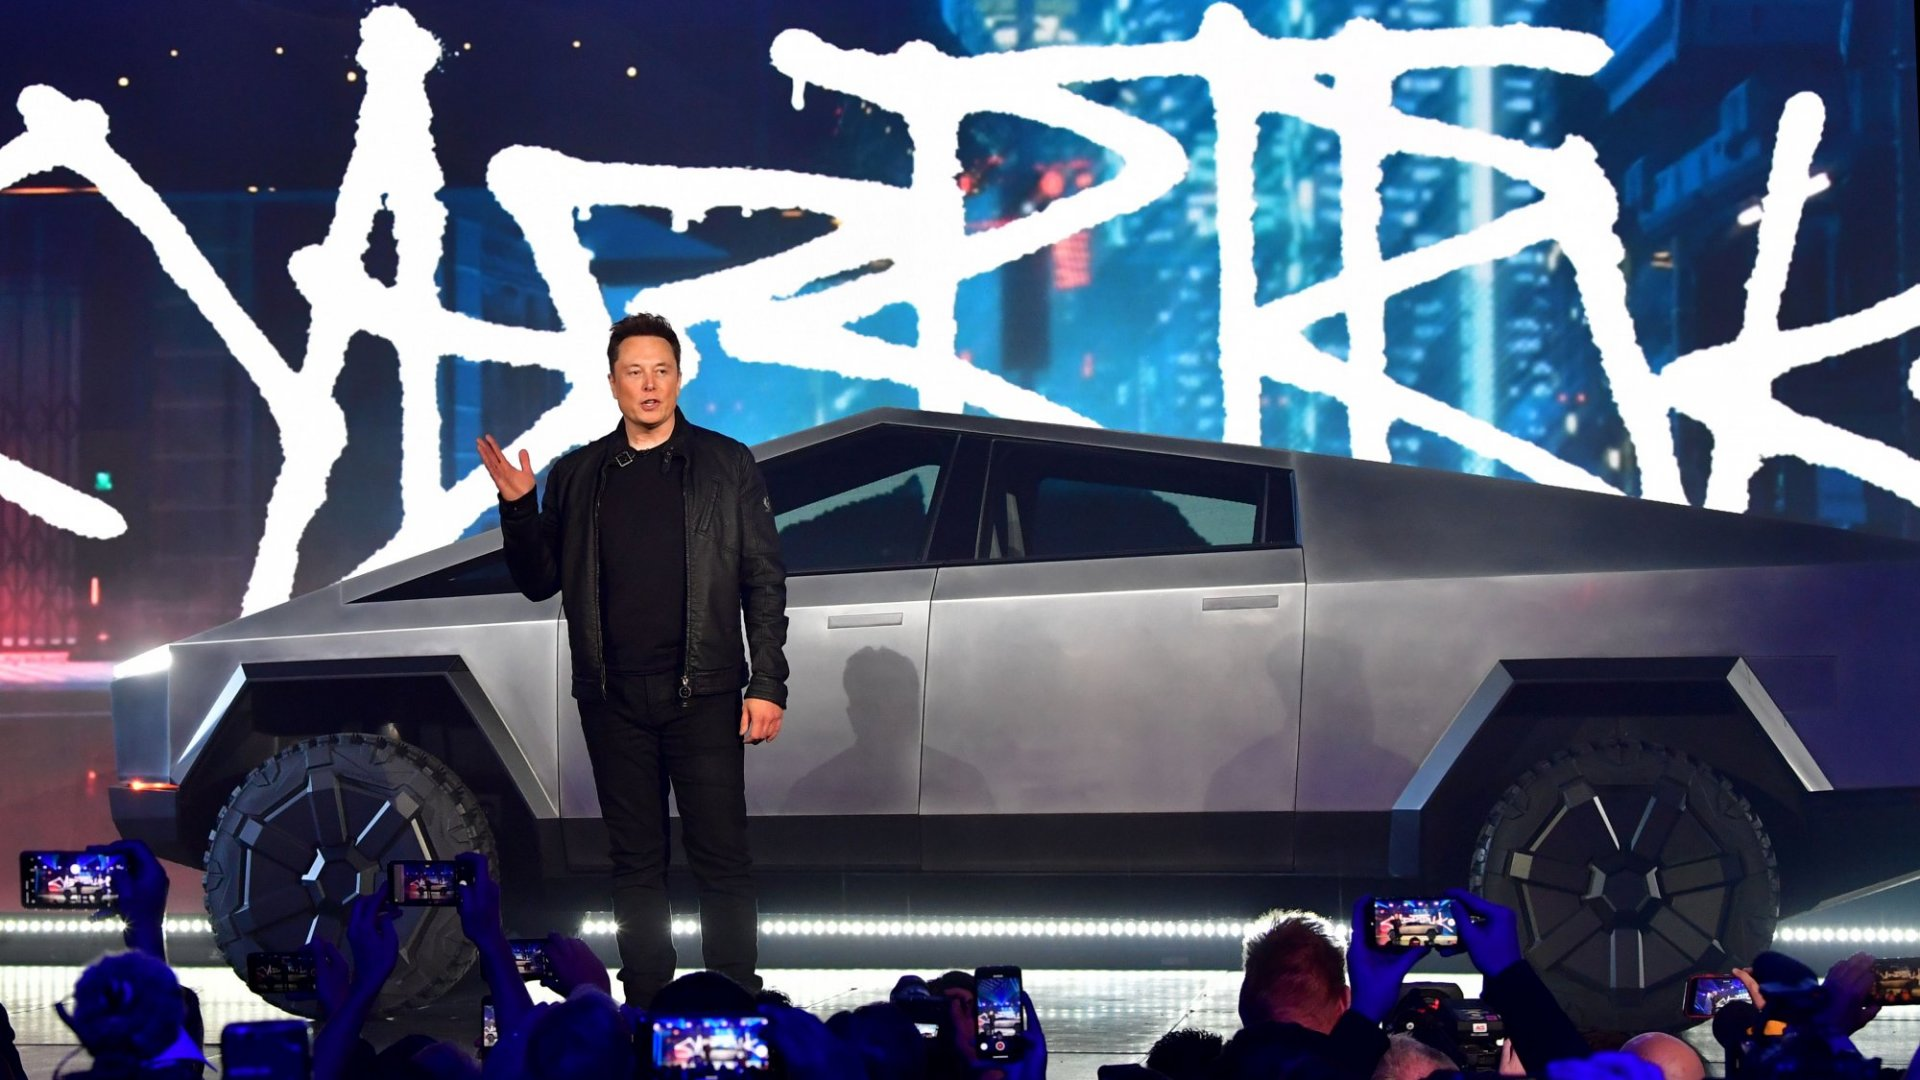 I Don't Care That Elon Musk Made a Weird Looking Cybertruck. I Just Want a Vehicle That Keeps People Safe and Saves Lives